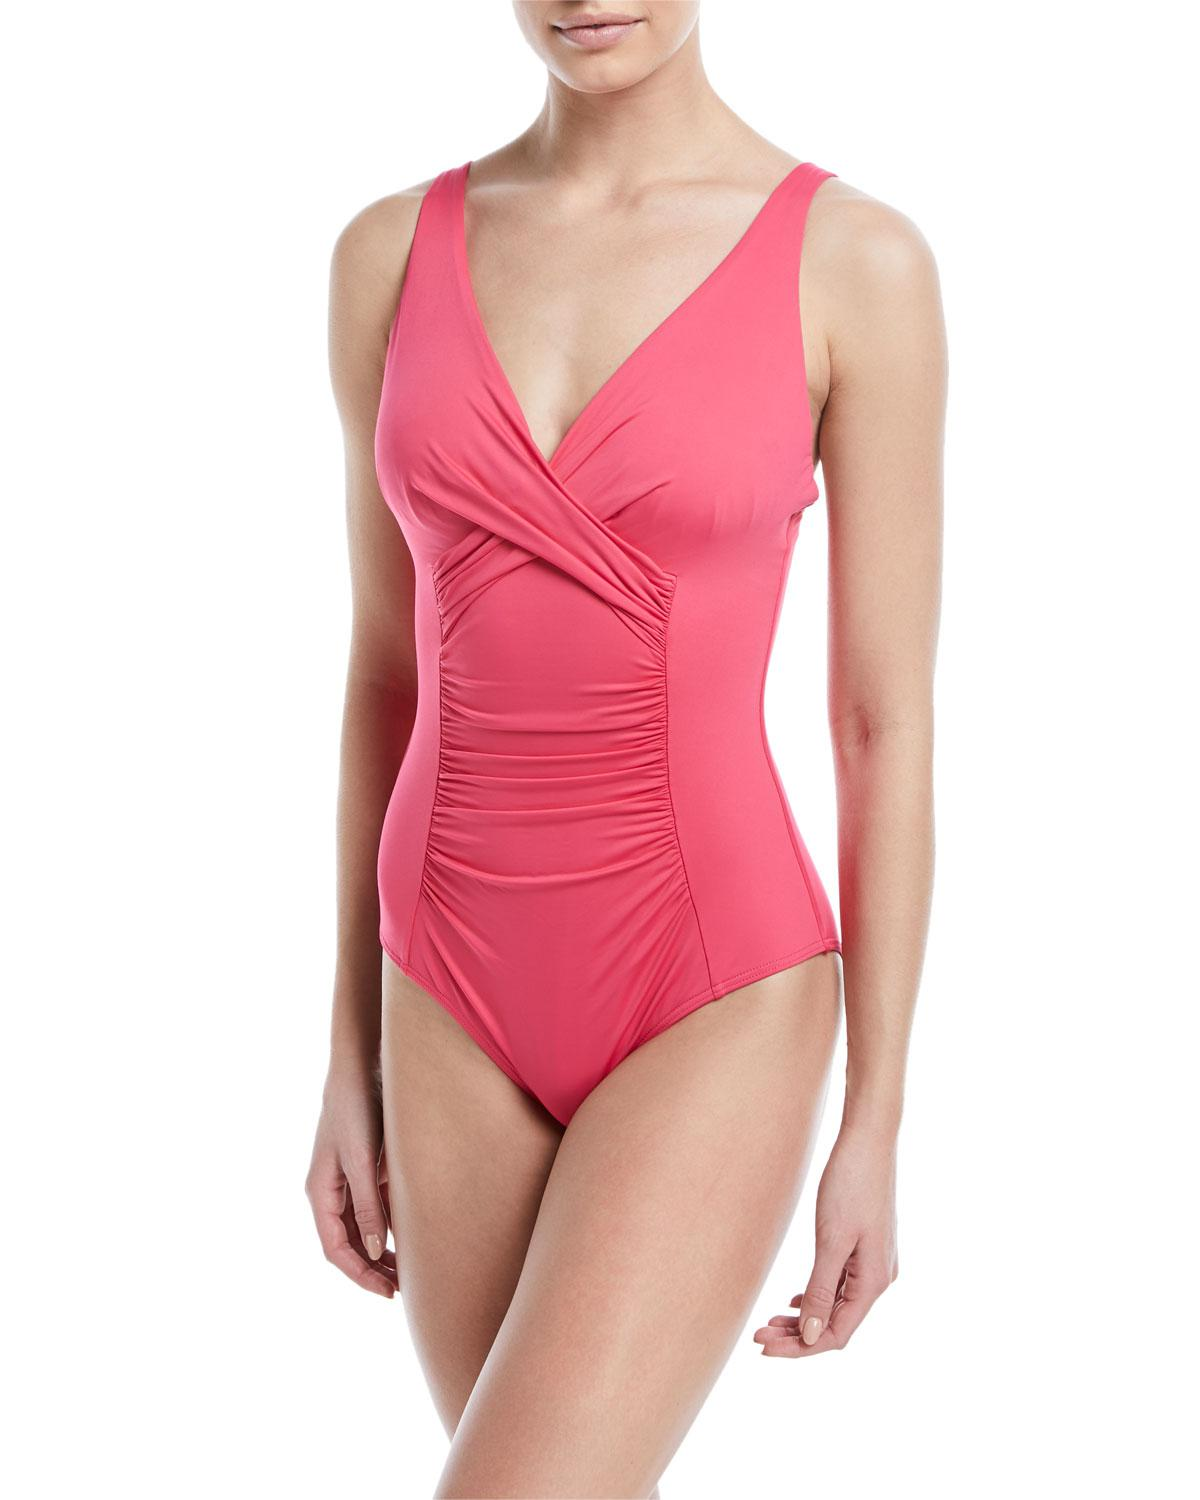 e6b19073b6a Jets by Jessika Allen. Women's Pink Flora Underwire Ruched One-piece  Swimsuit ...